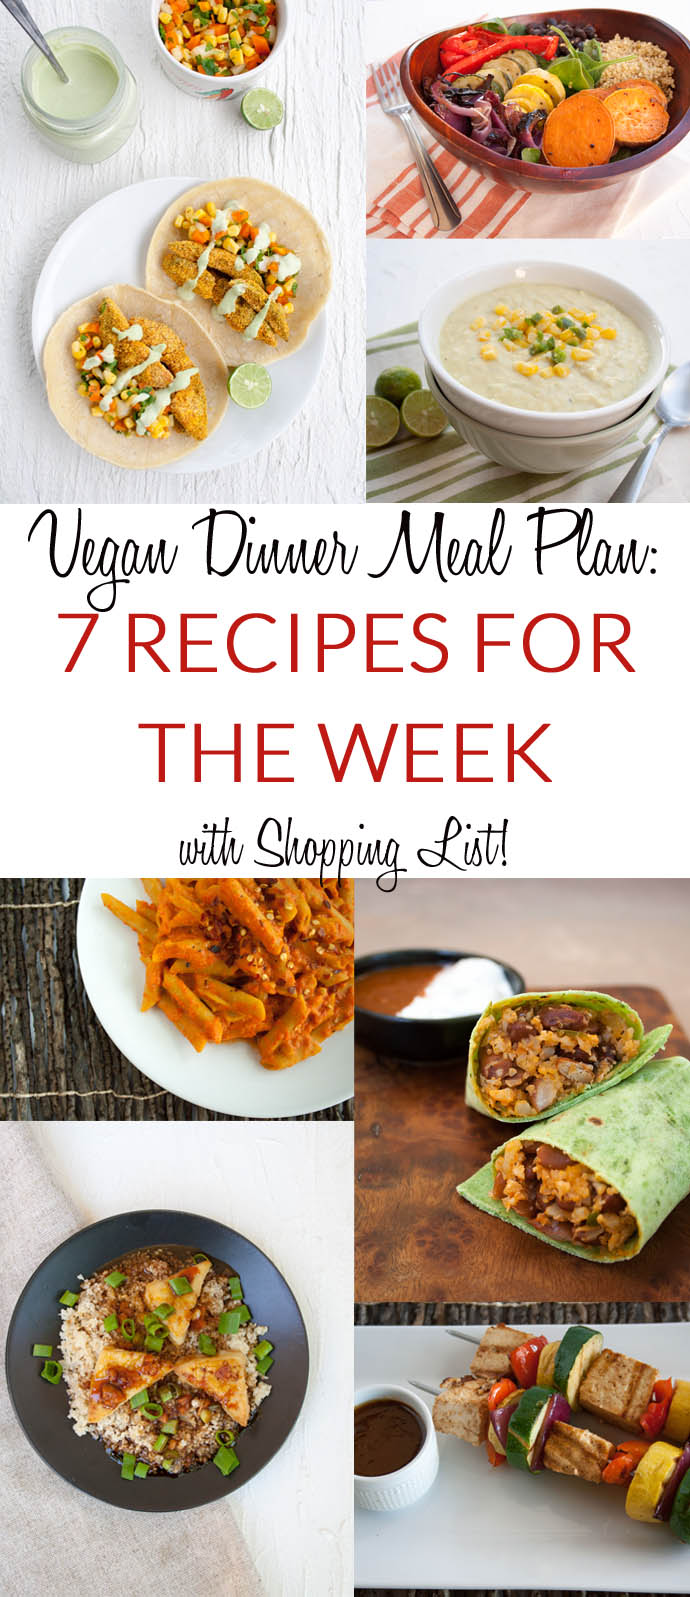 Vegan Dinner Meal Plan: 7 Recipes For the Week with Shopping List - This is a great resource for those of you who are busy and struggling to figure out what to make for dinner.